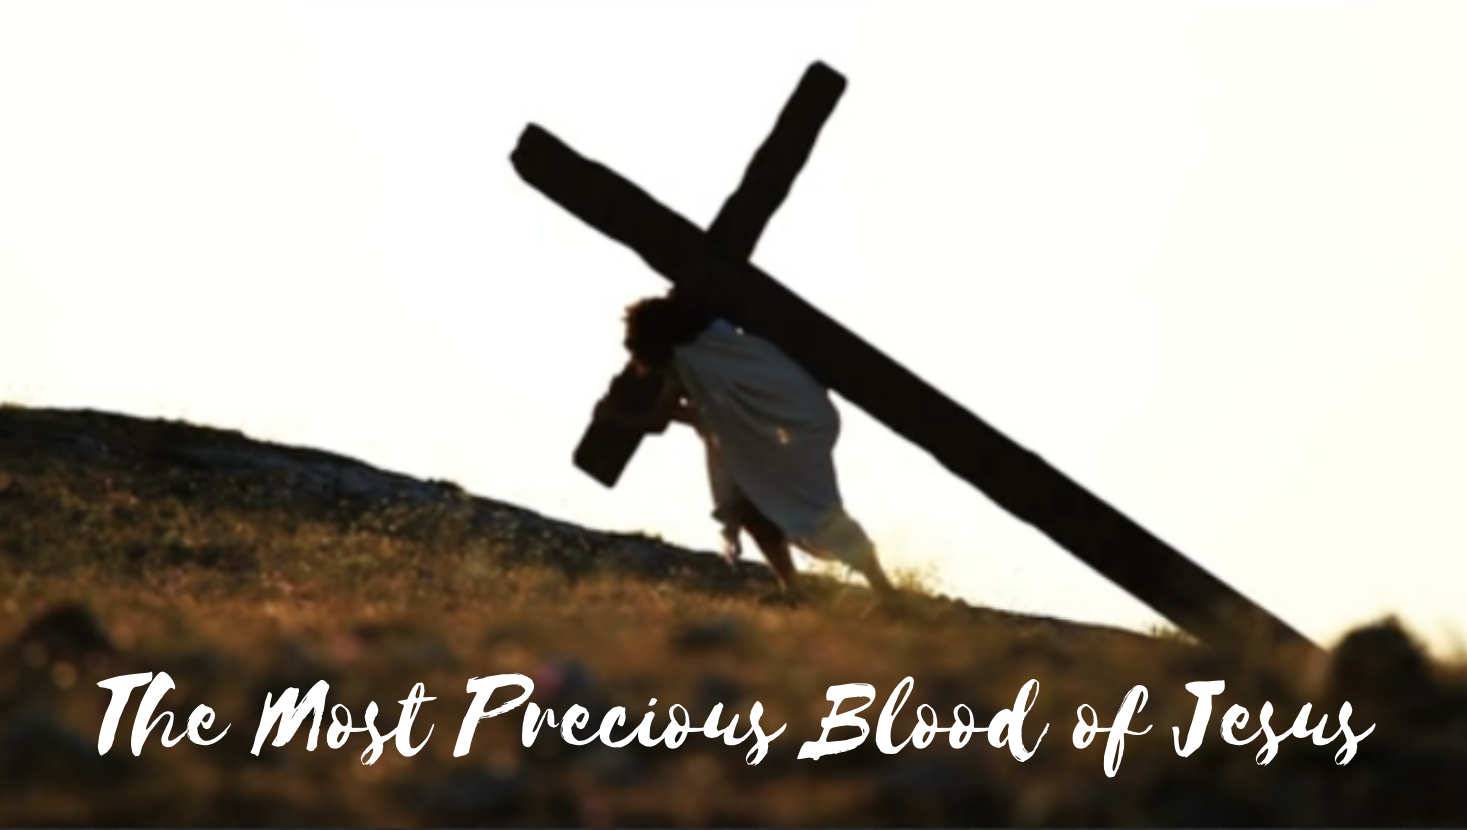 July - The Most Precious Blood of Jesus